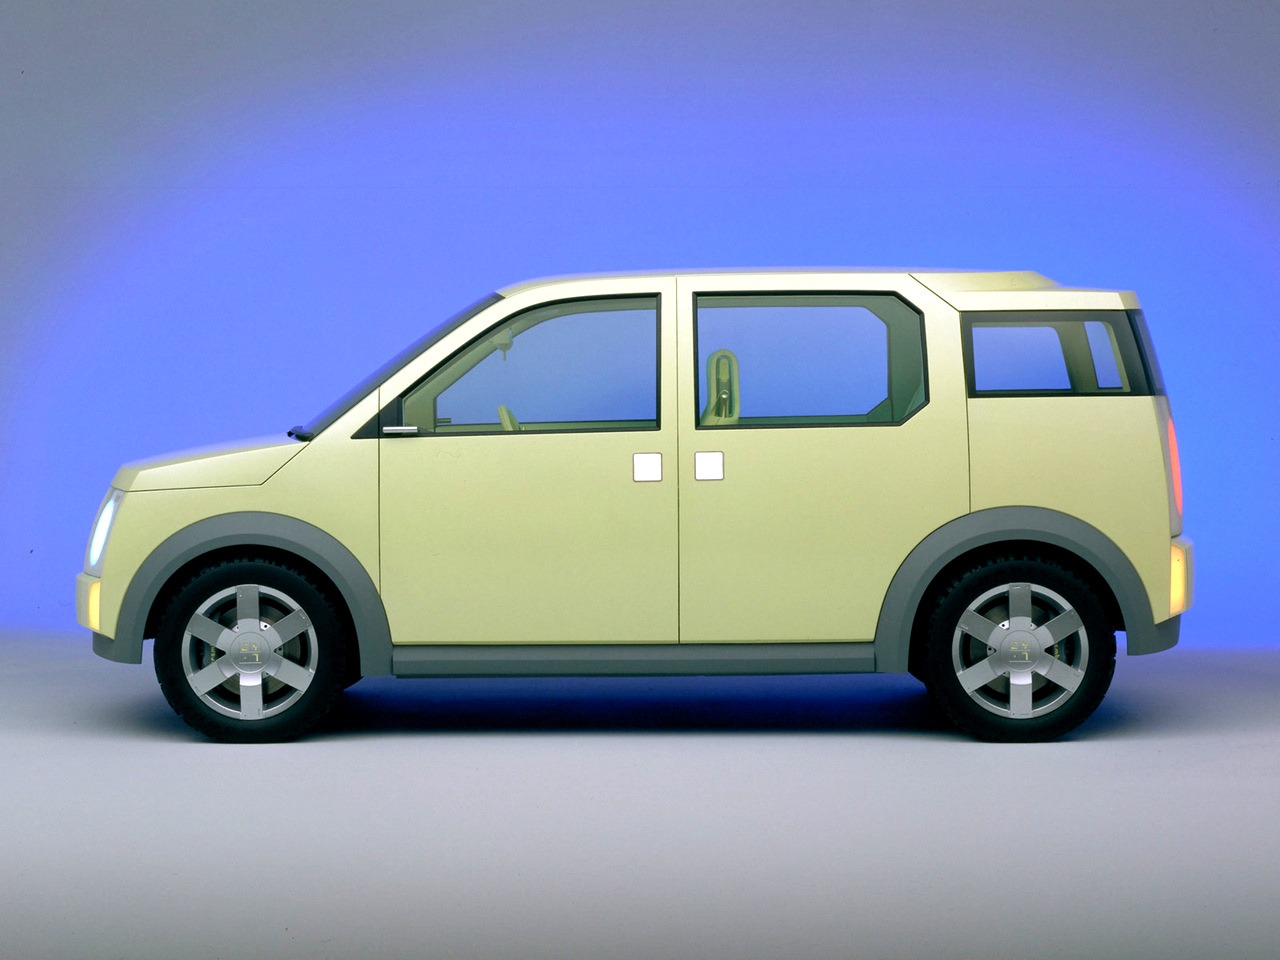 Ford 24-7 Wagon Concept (2000) – Old Concept Cars